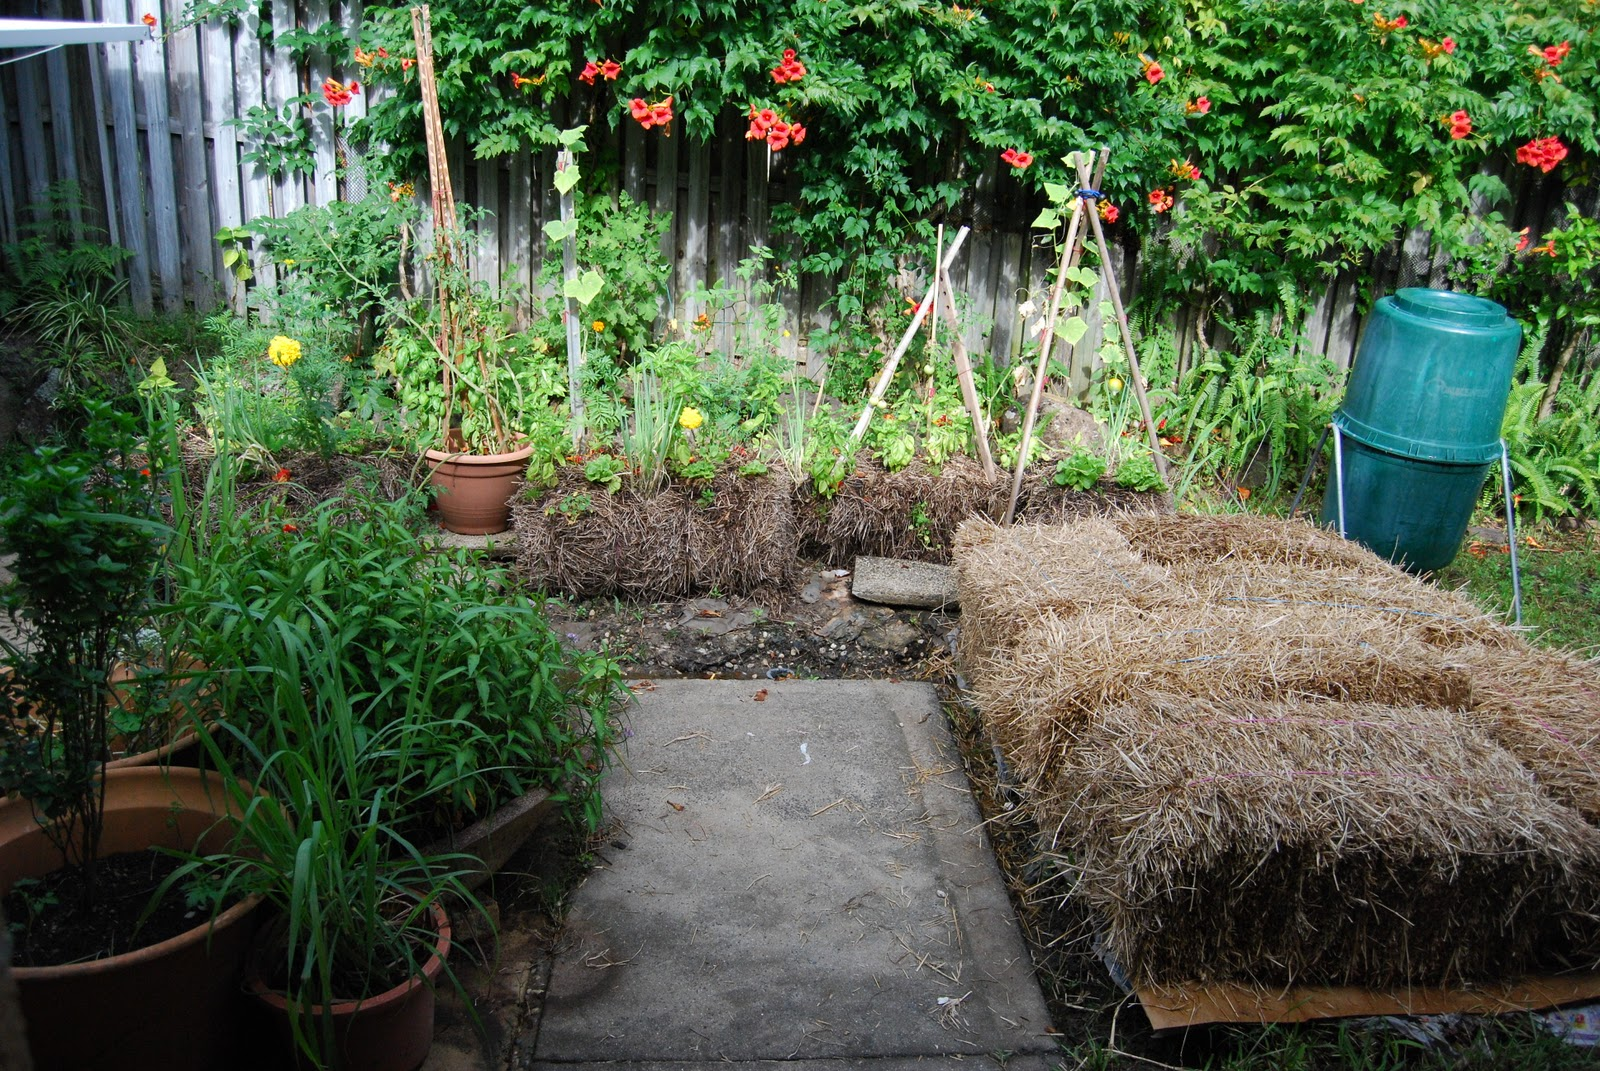 and pictured here is the start of my second straw bale garden - Straw Bale Garden